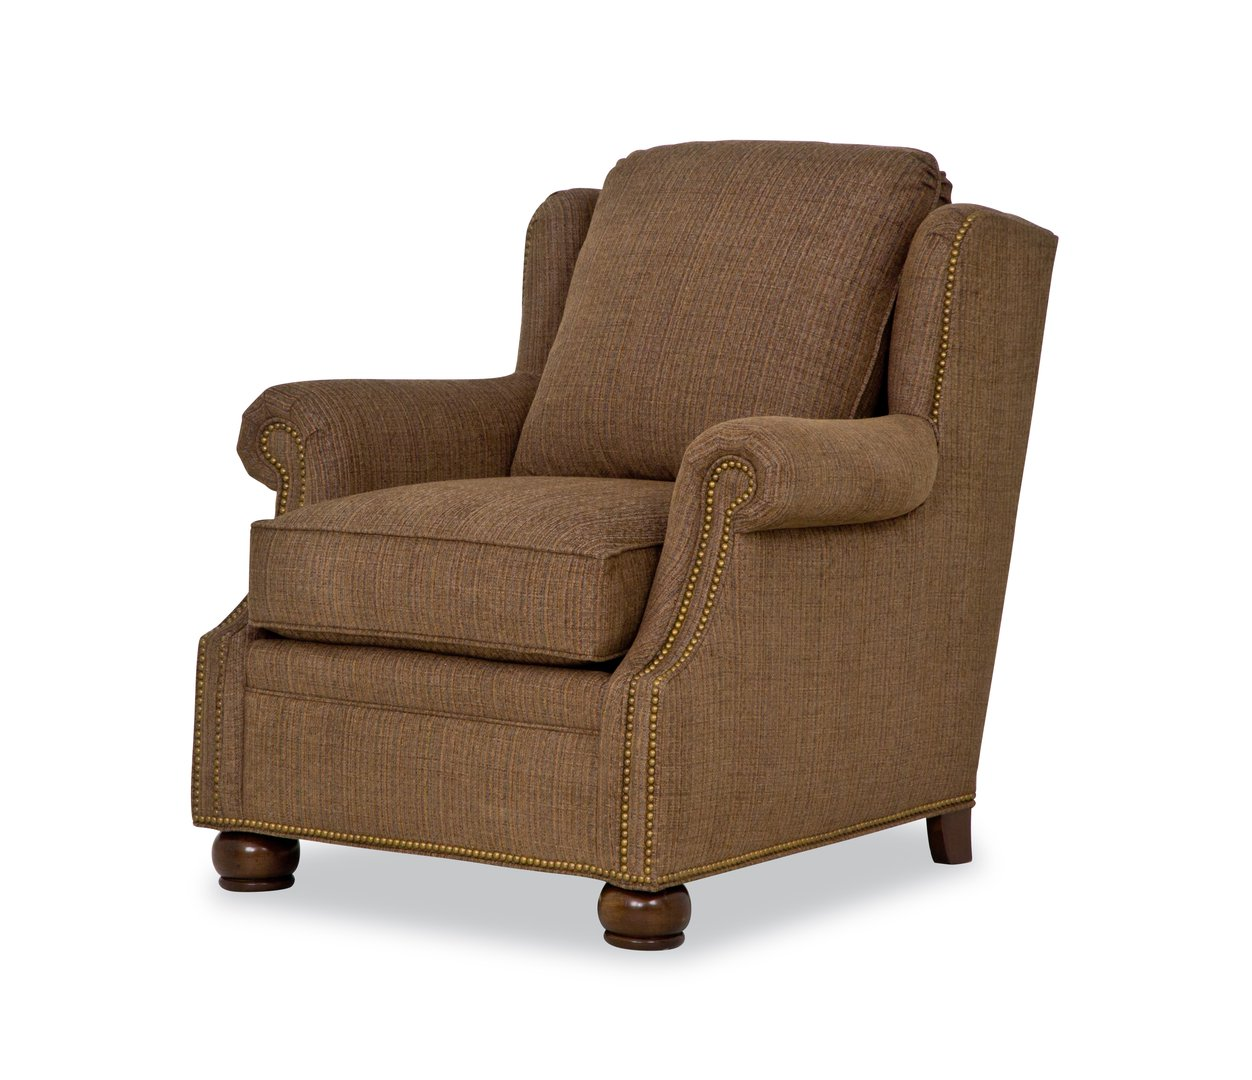 EDWARD CHAIR Image